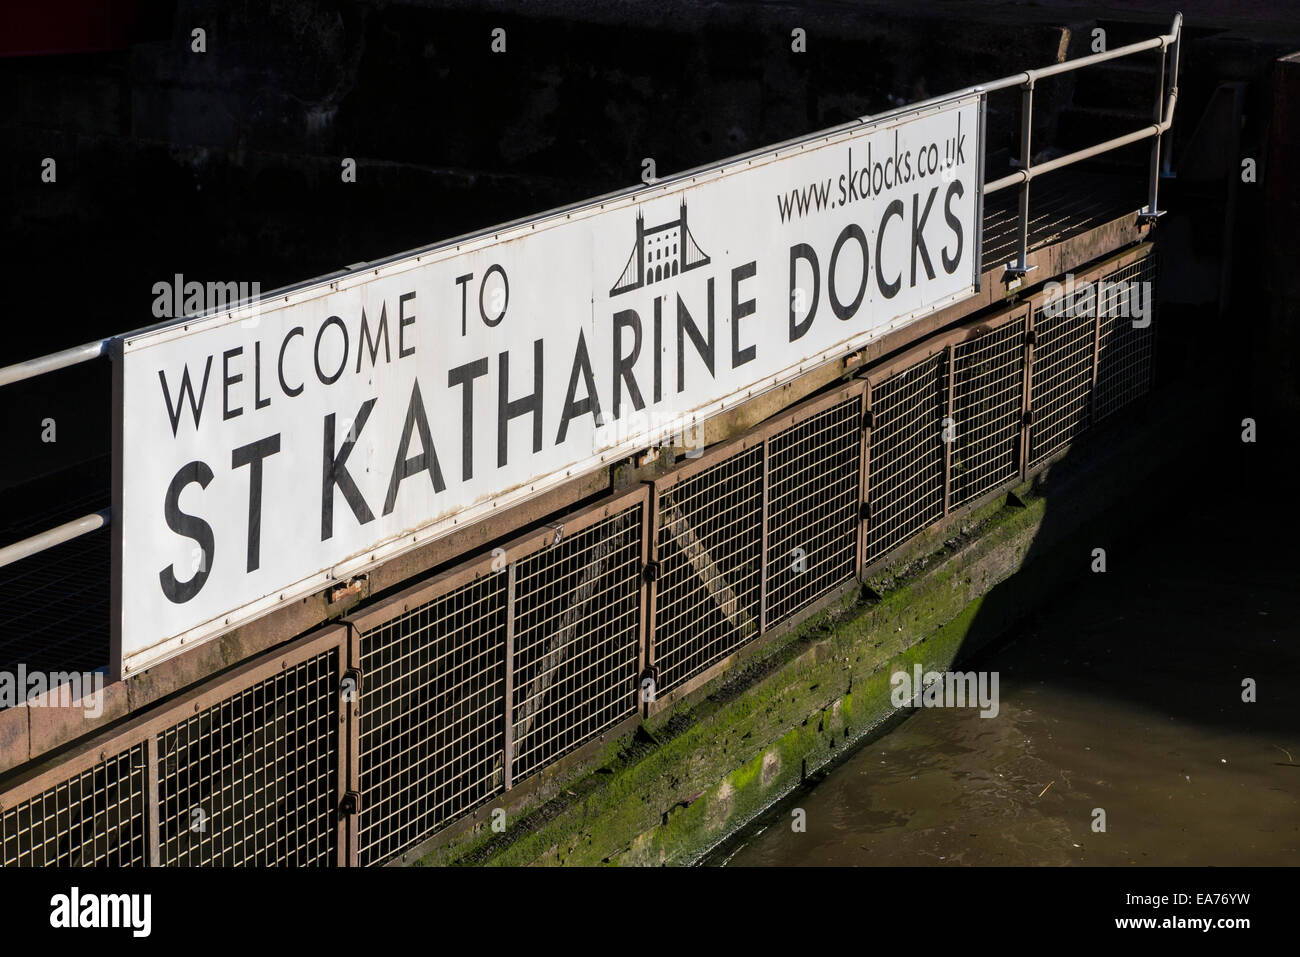 Welcome sign at St Katherine Docks, Pool of London